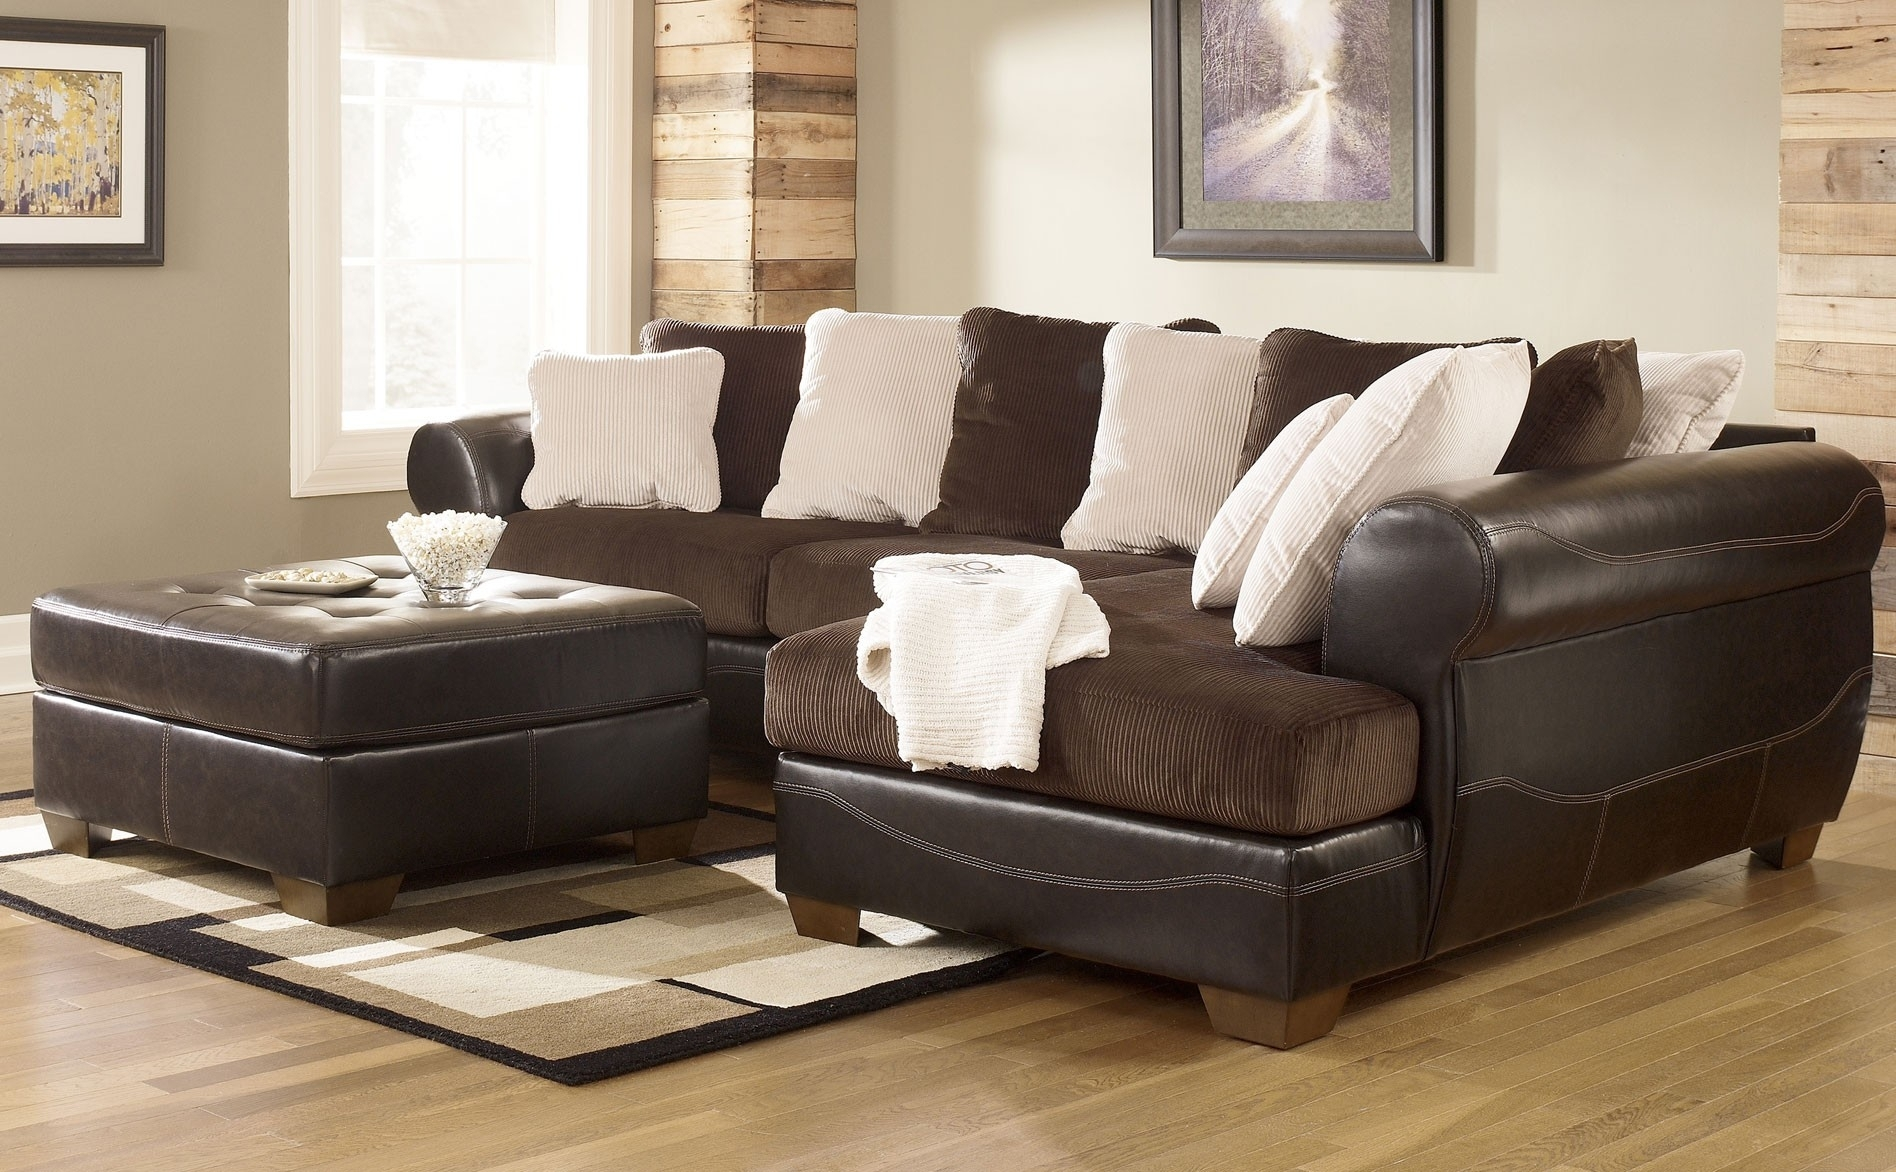 Trend Ashley Furniture Sectional Sleeper Sofa 78 In Sectional Sofas Inside Tucson Sectional Sofas (Image 9 of 10)